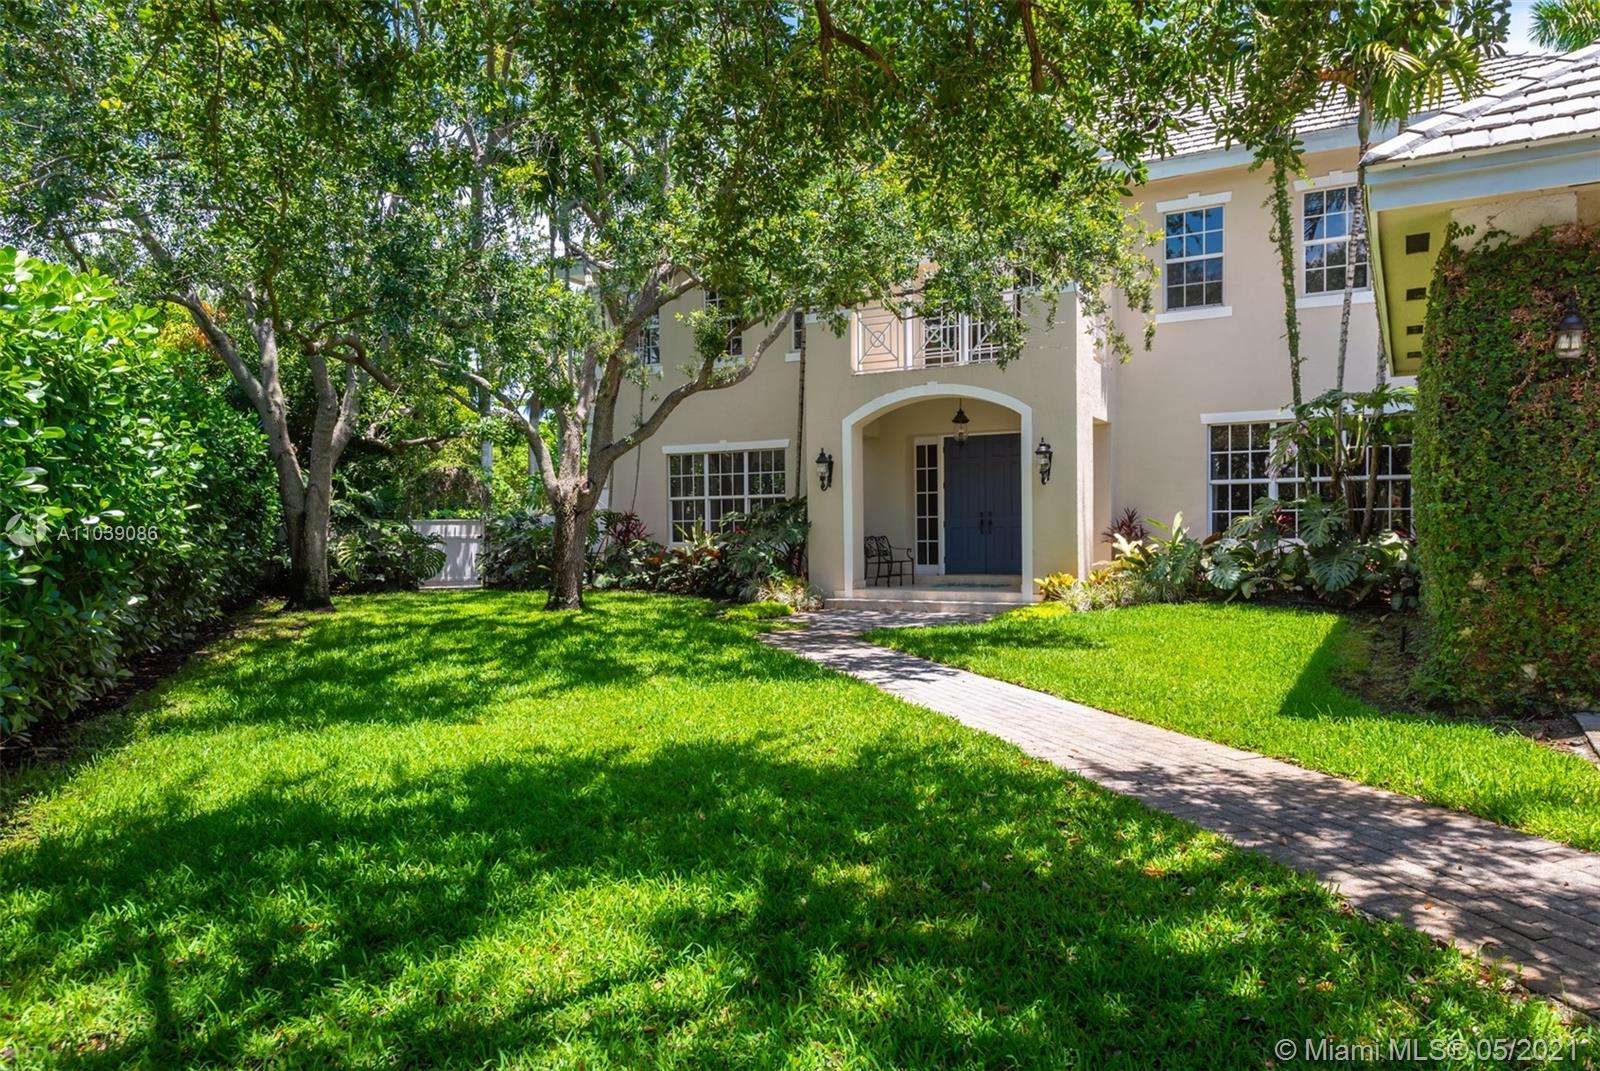 Gorgeously updated 5BR/4.5BA Pinecrest home on .5 acre in the Red Oaks gated community. Each room & bath are unique. Interior designer high end finishes, lighting, millwork & built-ins throughout, marble & wood floors, volume ceilings, impressive staircase, gourmet kitchen, huge closets,luxurious master bth. All impact glass. A true Chef's kitchen w/quartz countertops, spacious island & inviting breakfast rm. Master bdrm w/lg balcony, sitting area, 2 walk-in closets. 2car gar & laundry rm. Spacious landscaped yard, htd swimming pool & wraparound covered terrace perfect for entertaining. A very private setting in gated quiet cul-de-sac of only 5 residences. Well located in desirable NE Pinecrest near the best in Schools, Gardens, Marinas, Restaurants, Tennis, Community Events &  Shopping.